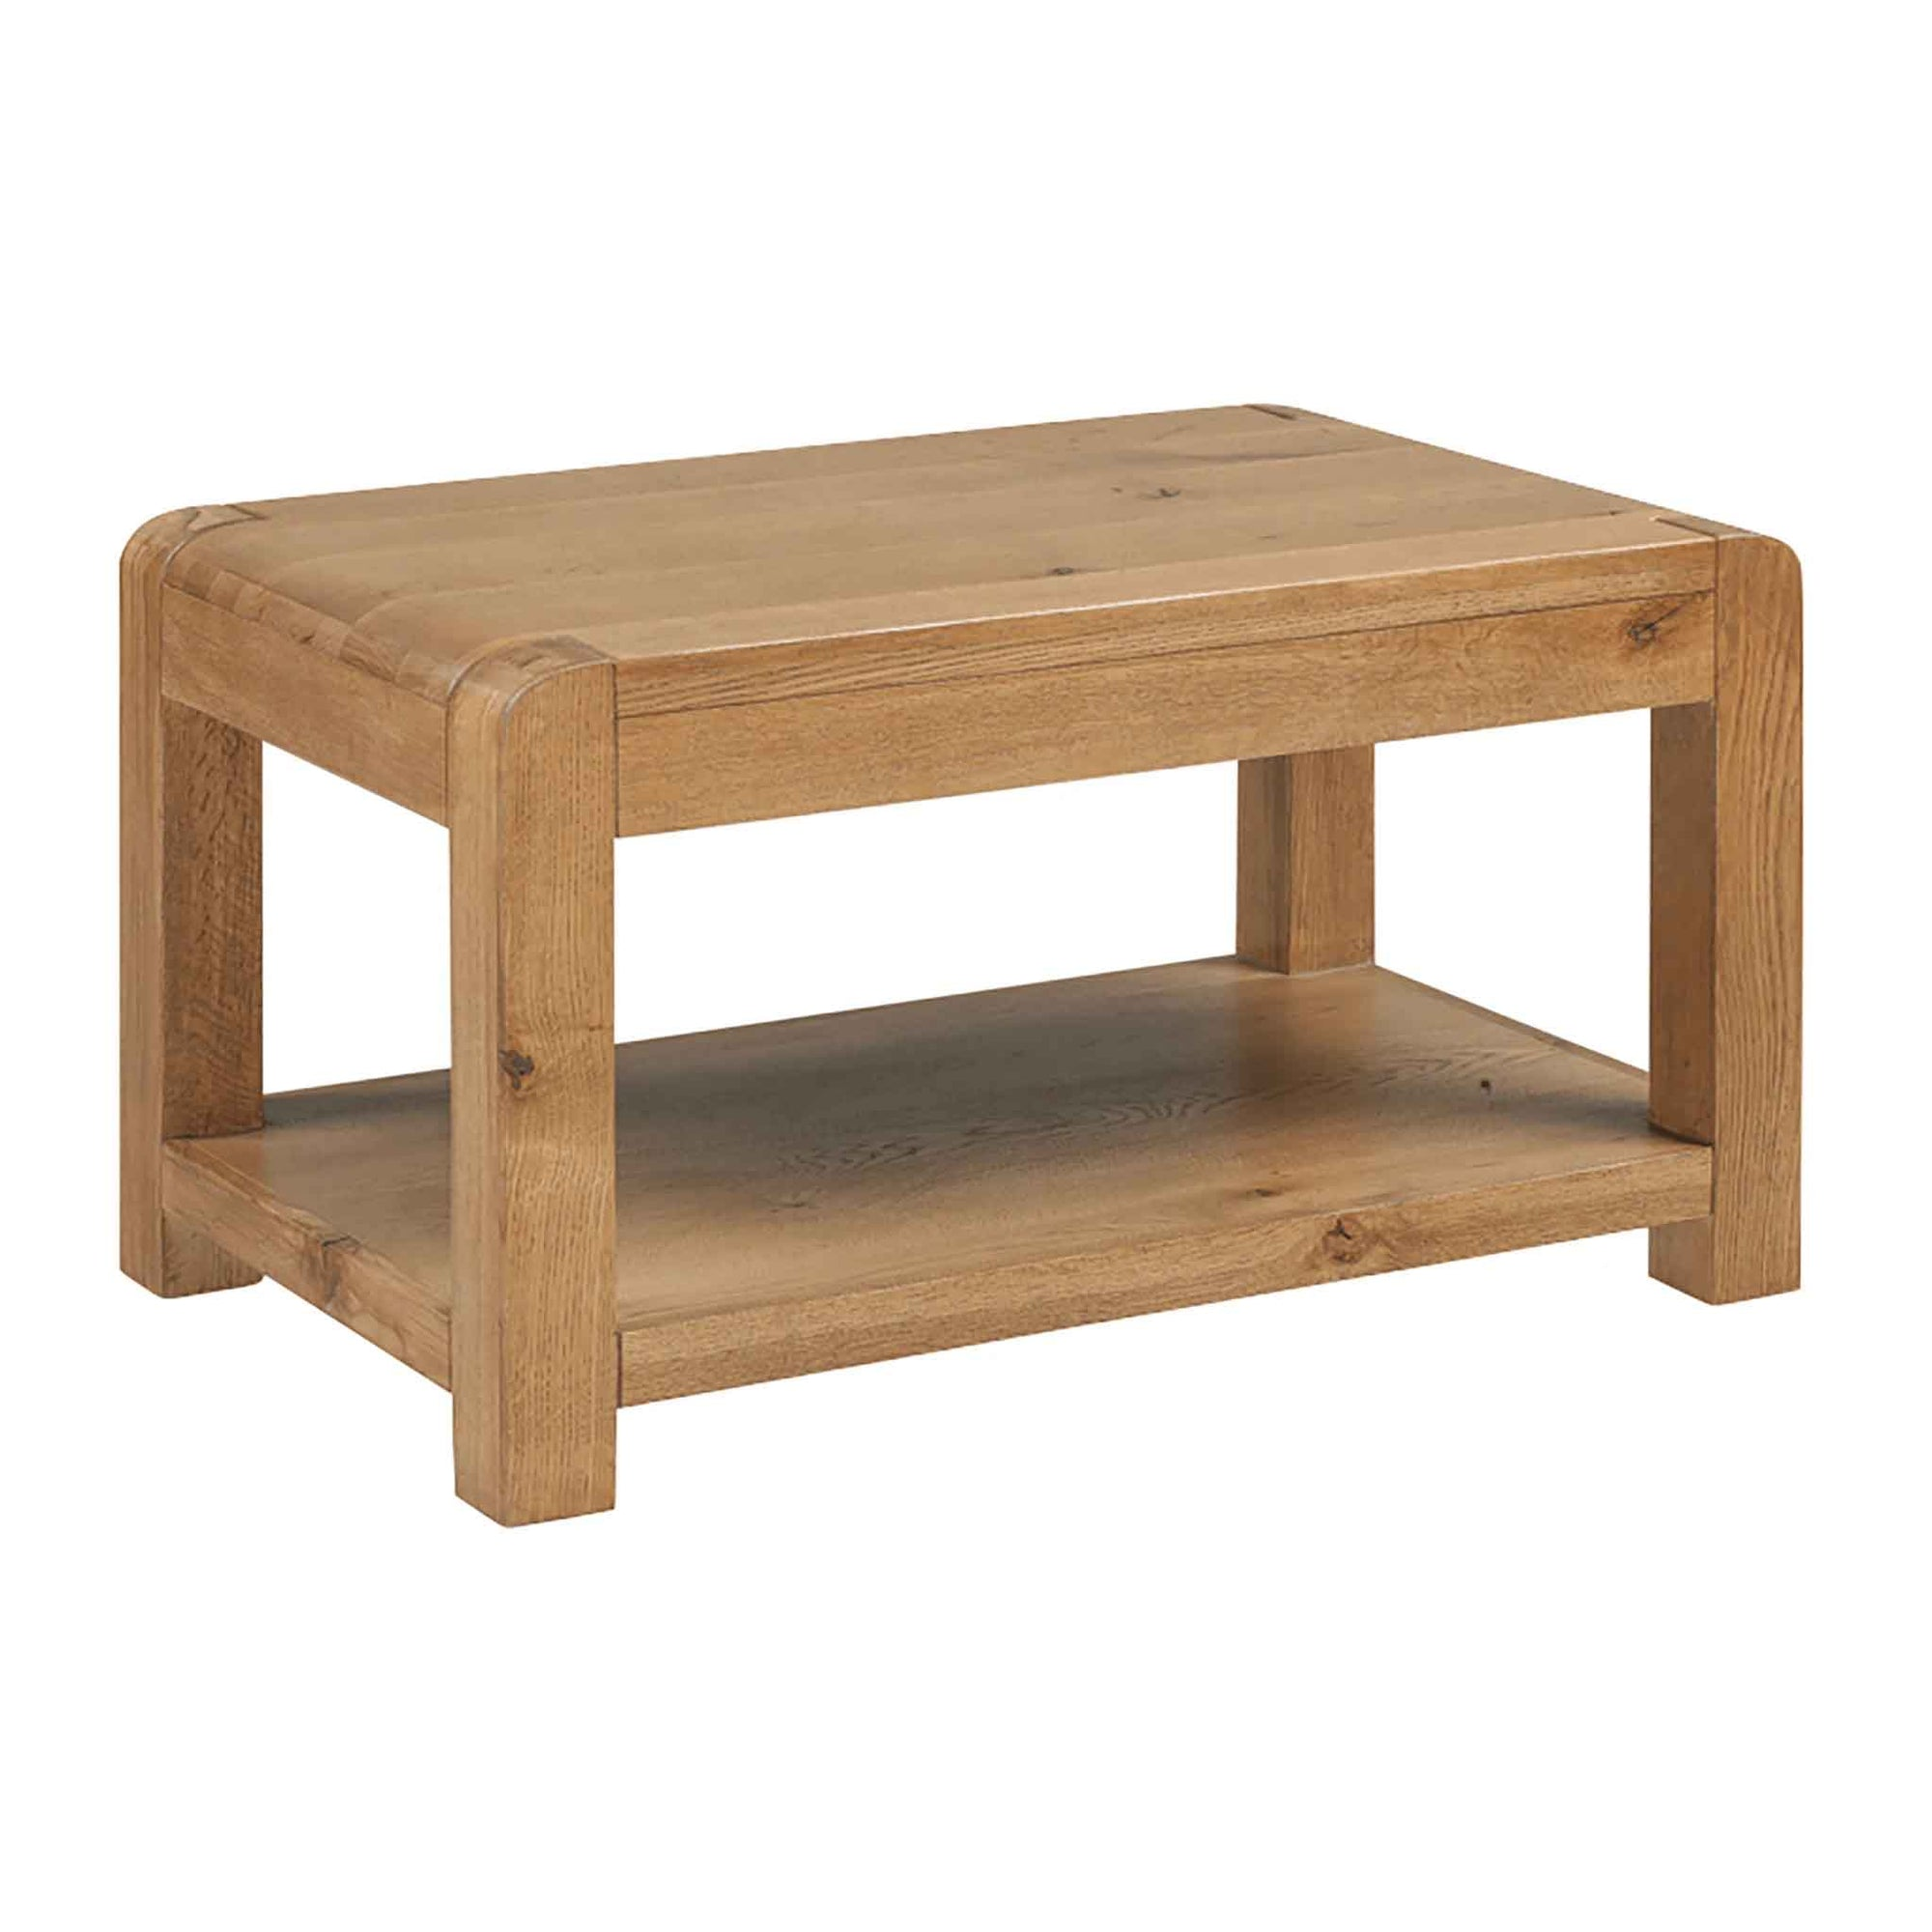 The Capri Oak Chunky Rustic Wooden Coffee Table from Roseland Furniture